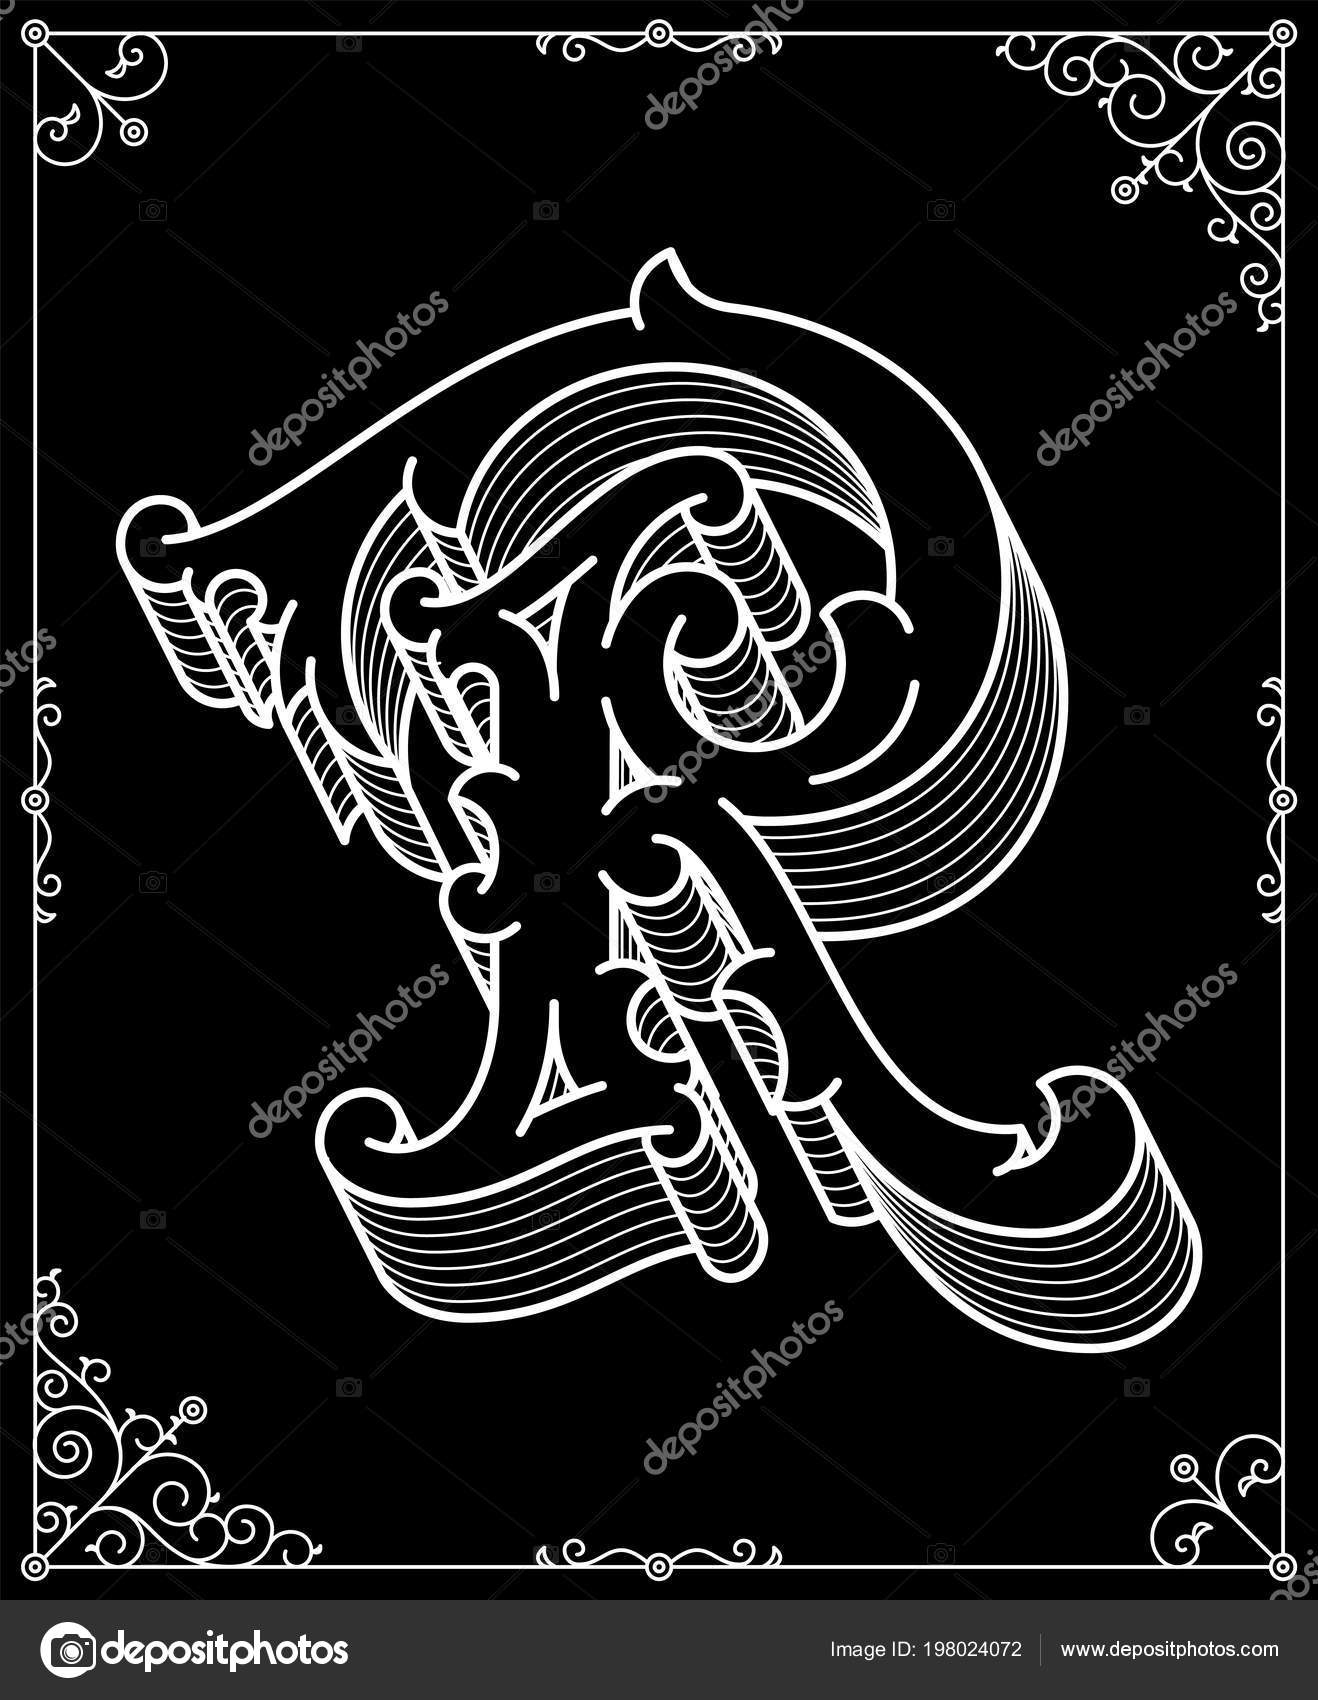 White Black Background Vector Illustration Depicting Modern Style Letter Stock Vector C Pennapazza 198024072